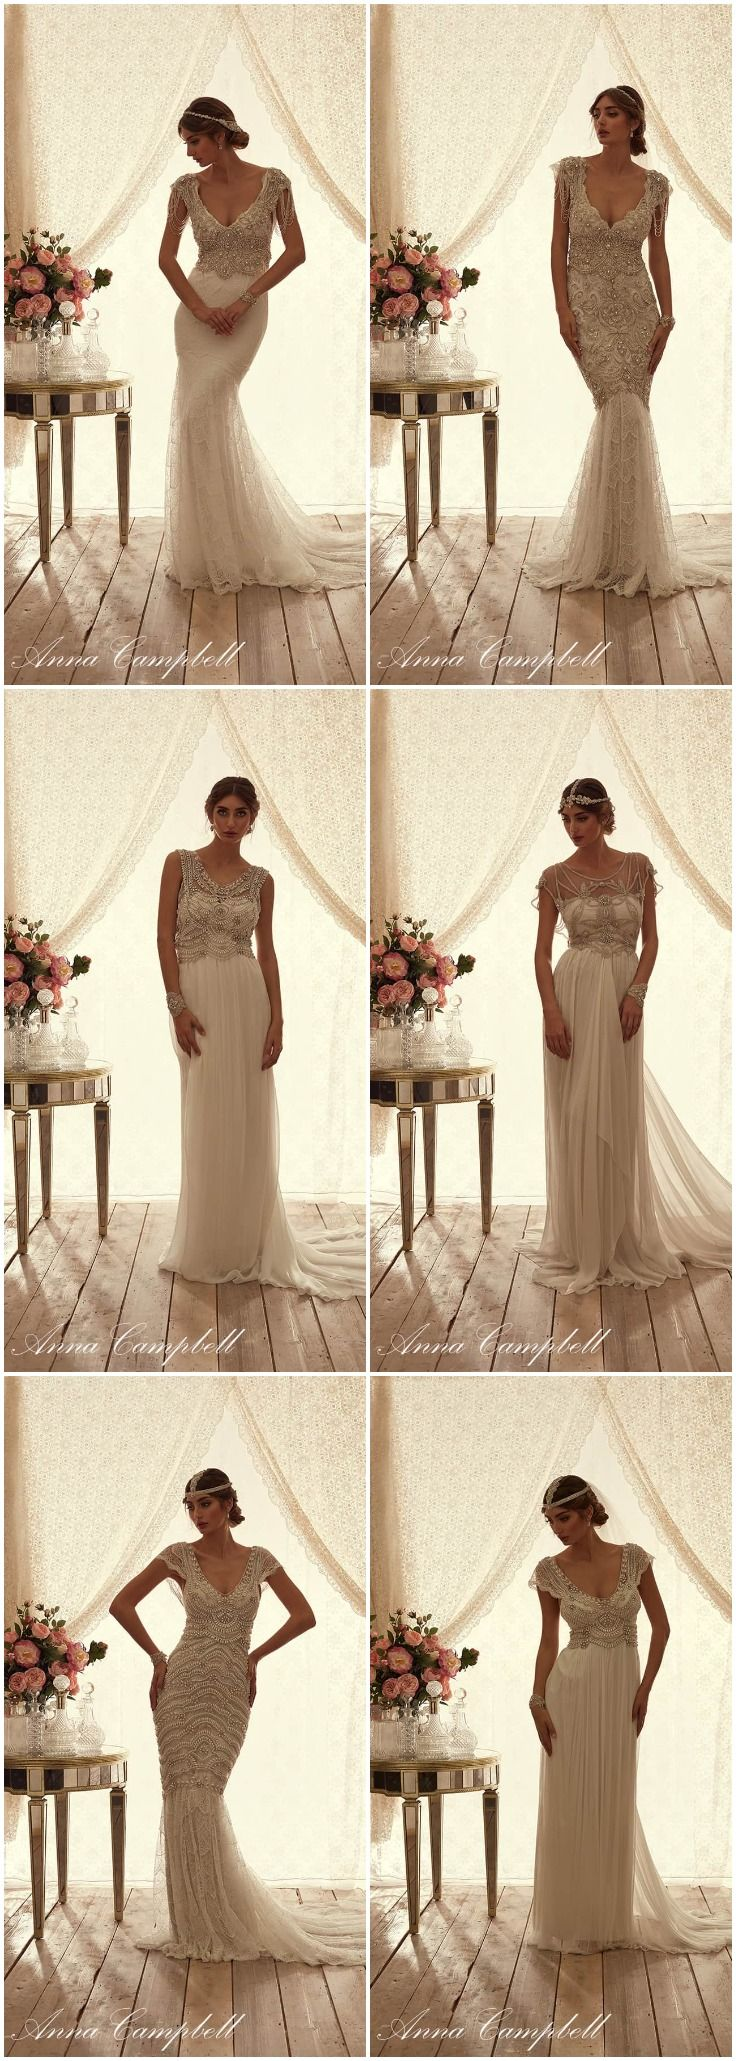 109 best anna campbell images on pinterest romantic for Off the rack wedding dresses melbourne